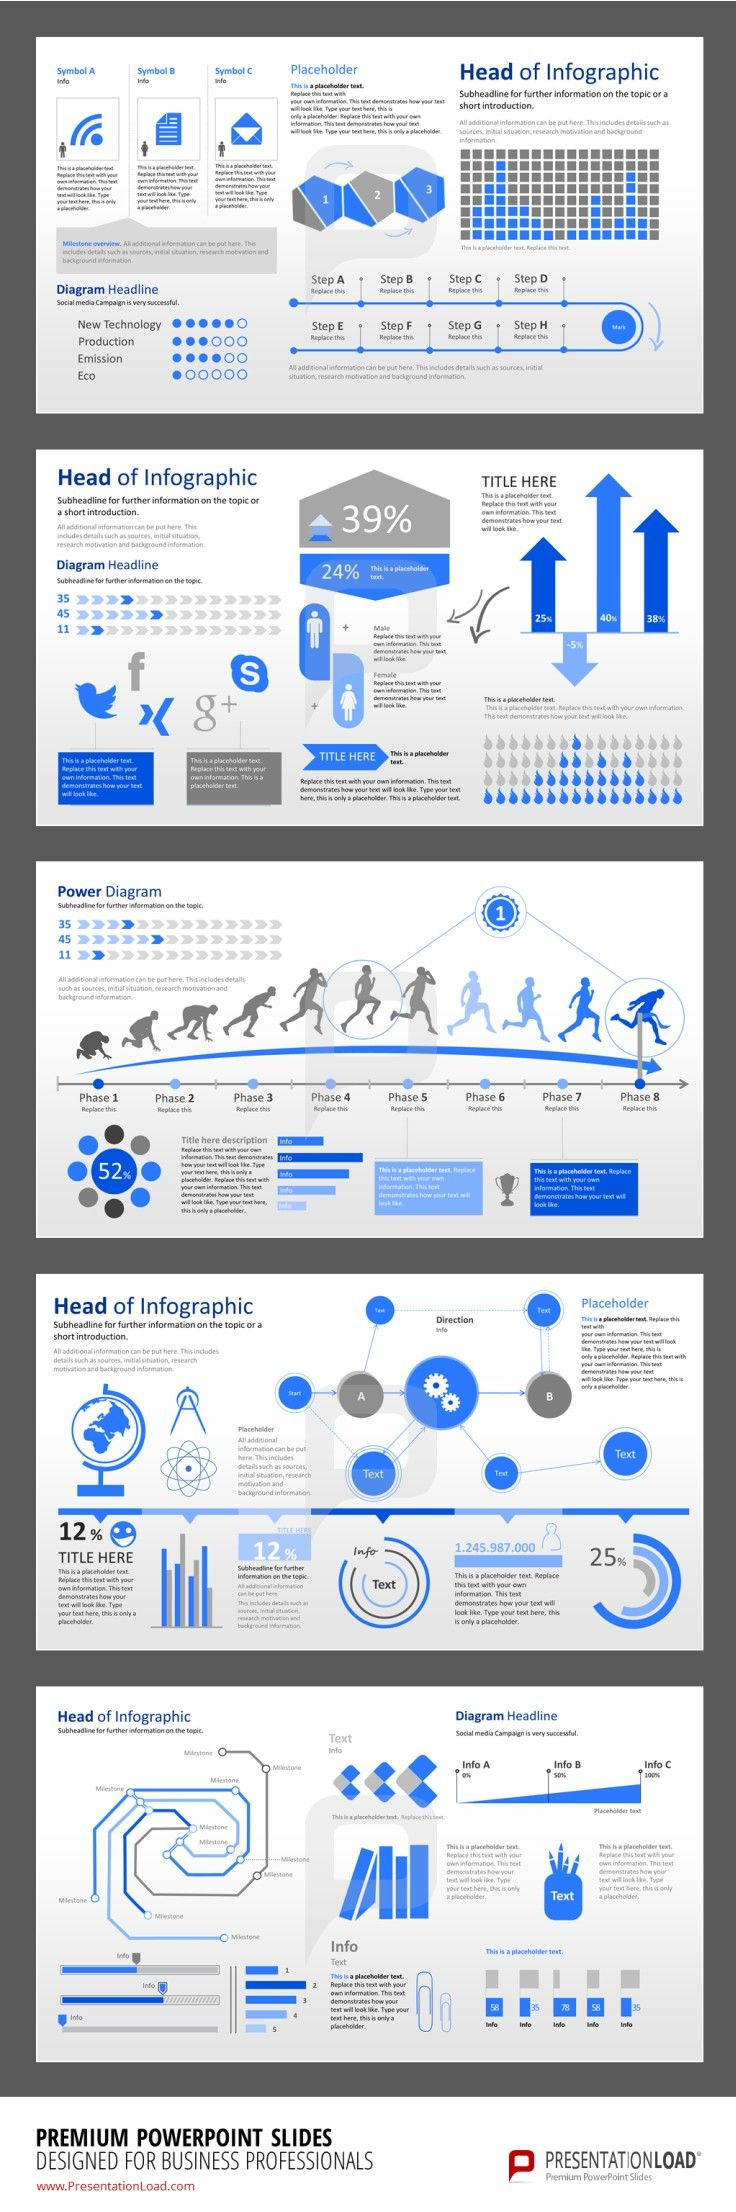 124 best Infographics images on Pinterest | Data visualization ...